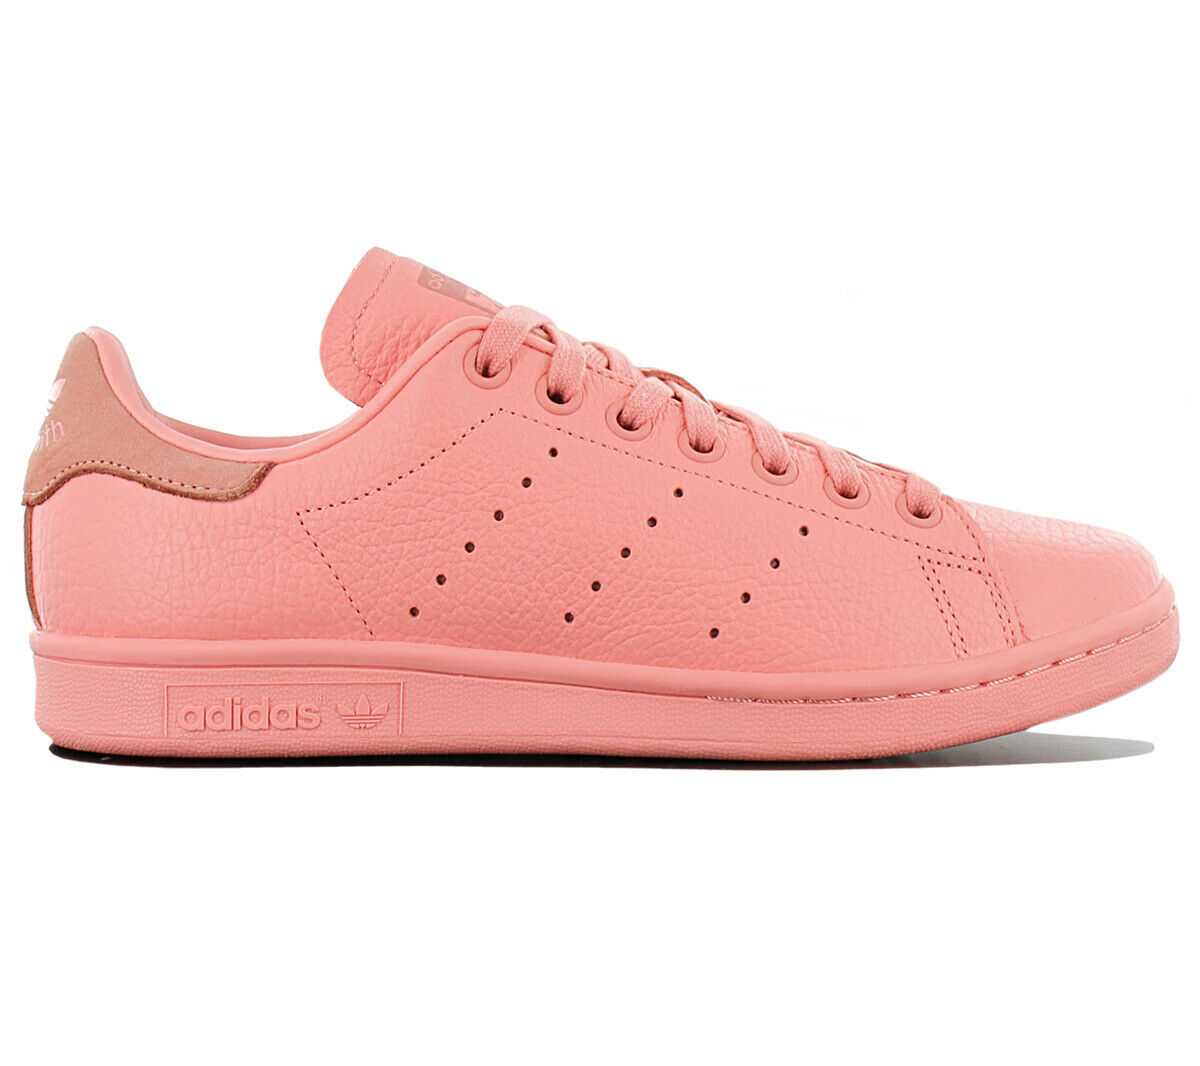 Adidas Originals Stan Smith Baskets Femme BZ0469 Cuir Rose Chaussures baskets